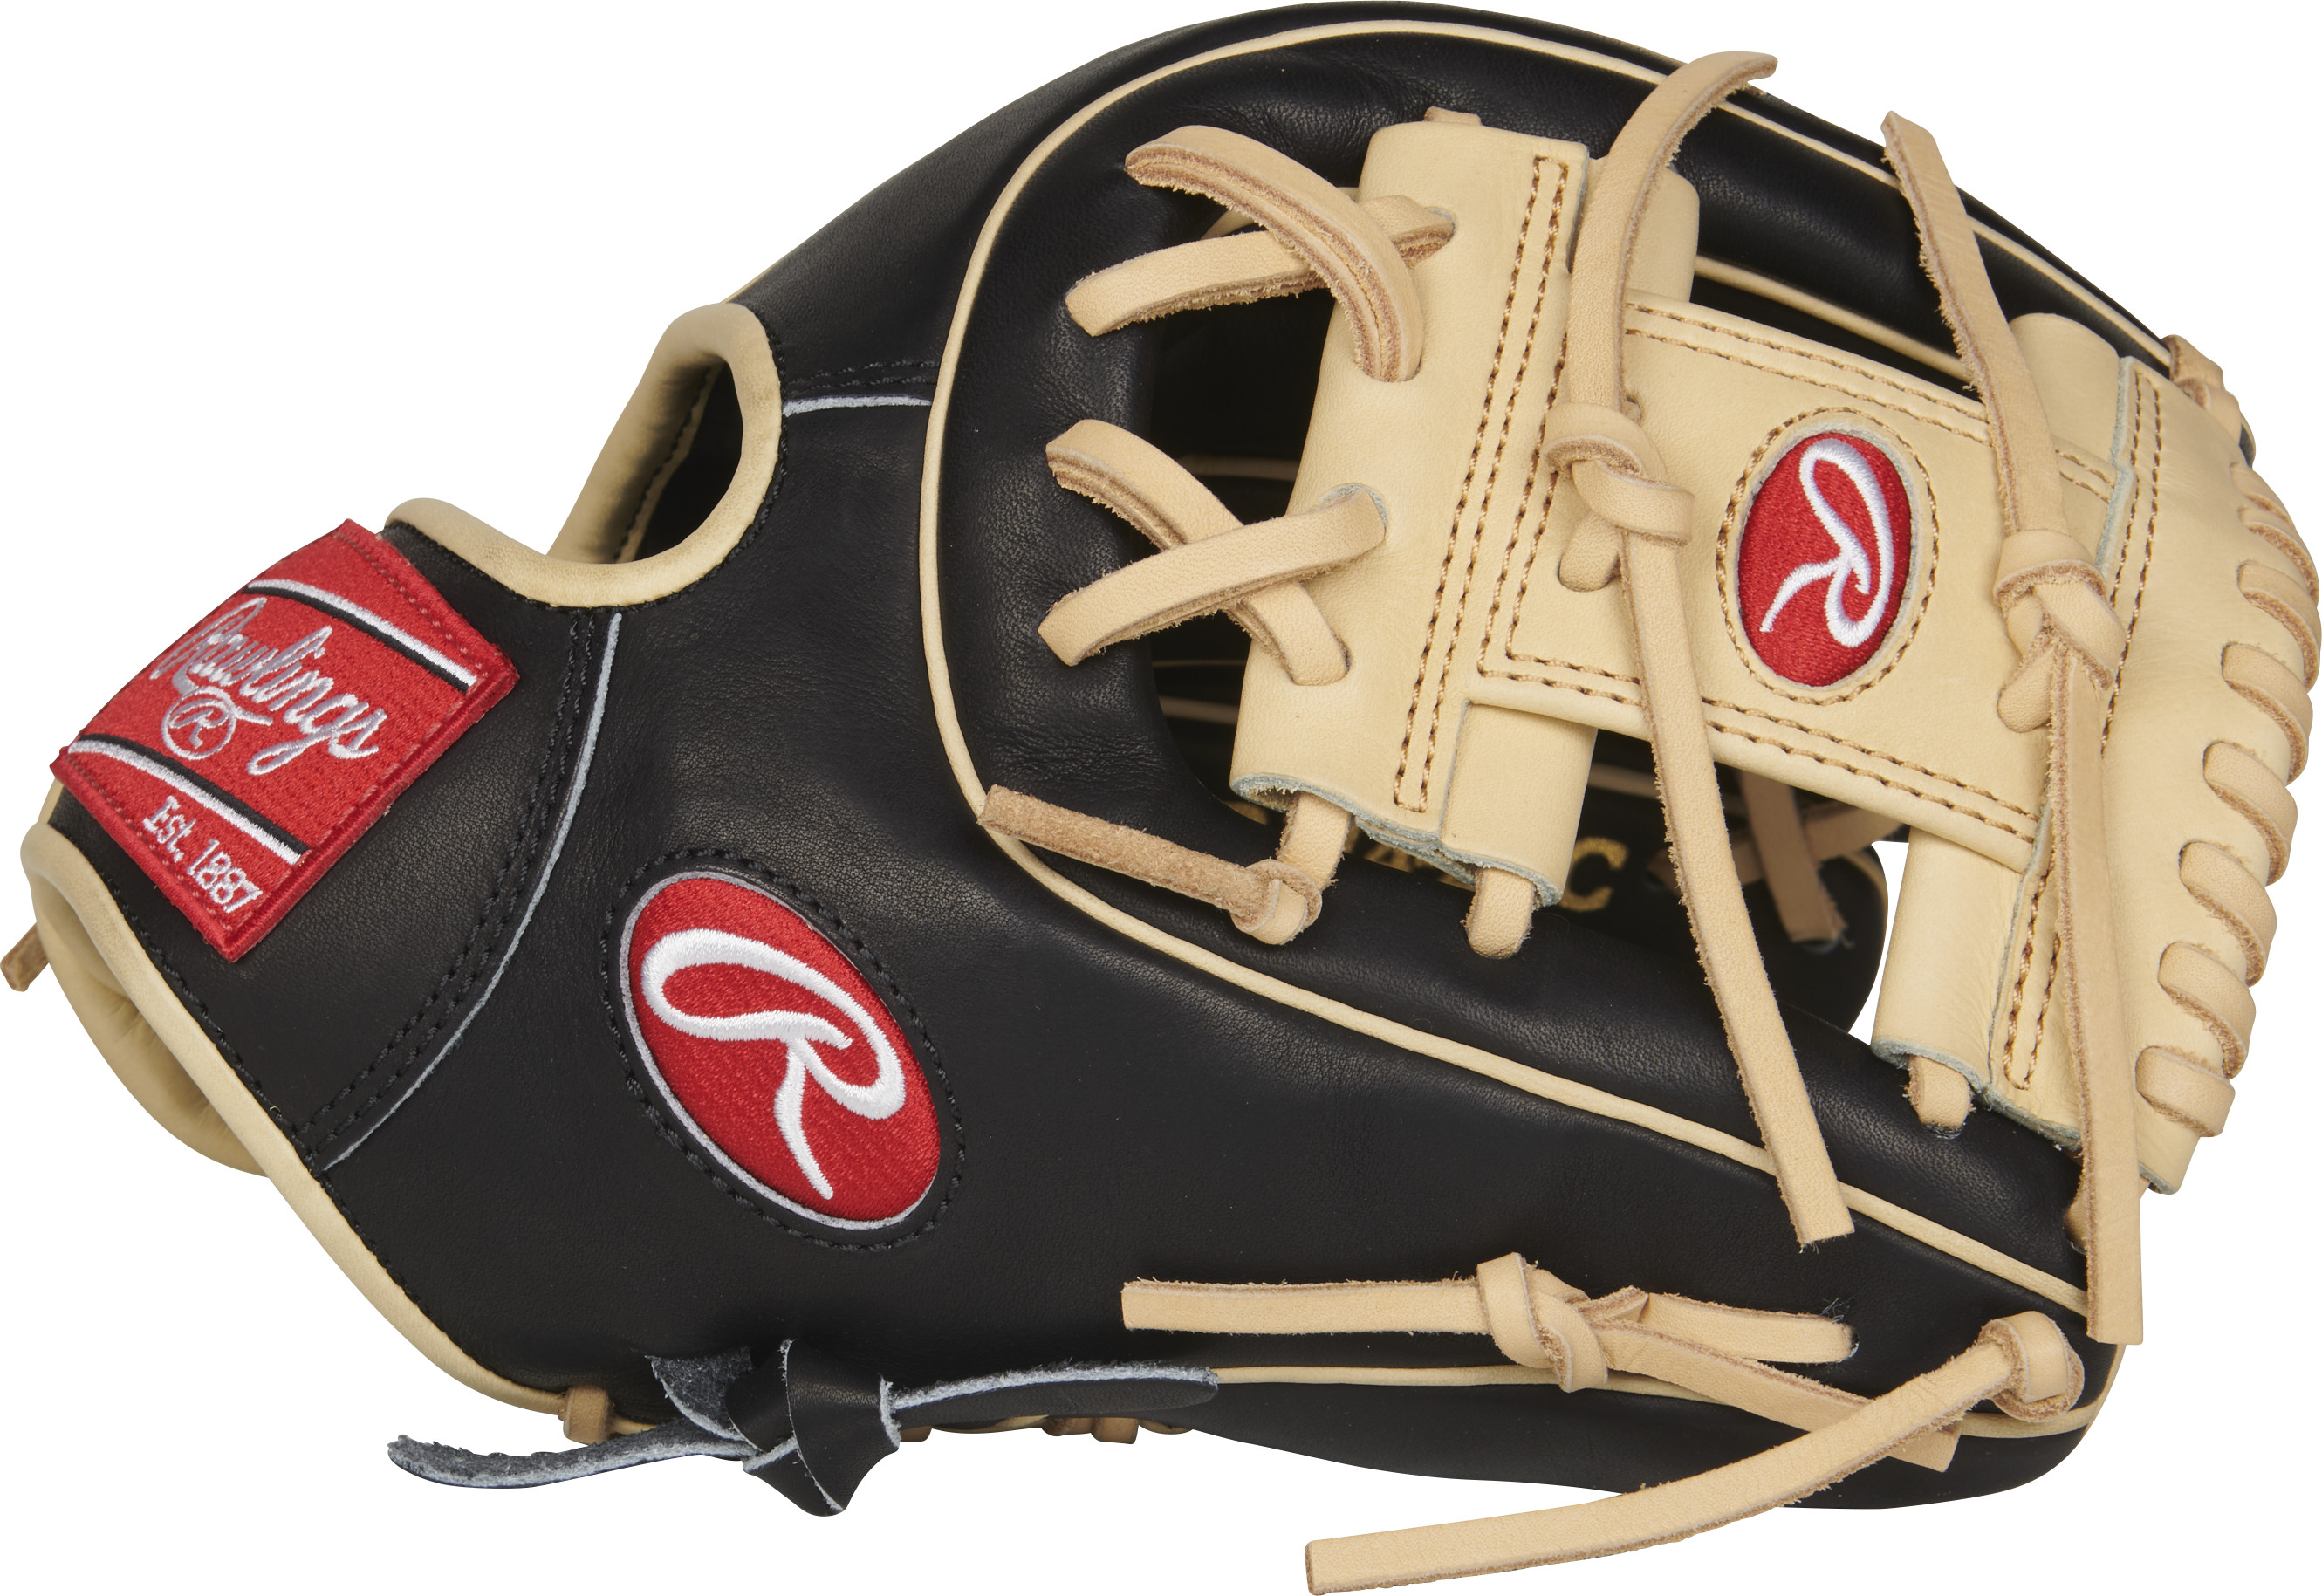 http://www.bestbatdeals.com/images/gloves/rawlings/PROR314-2BC-3.jpg